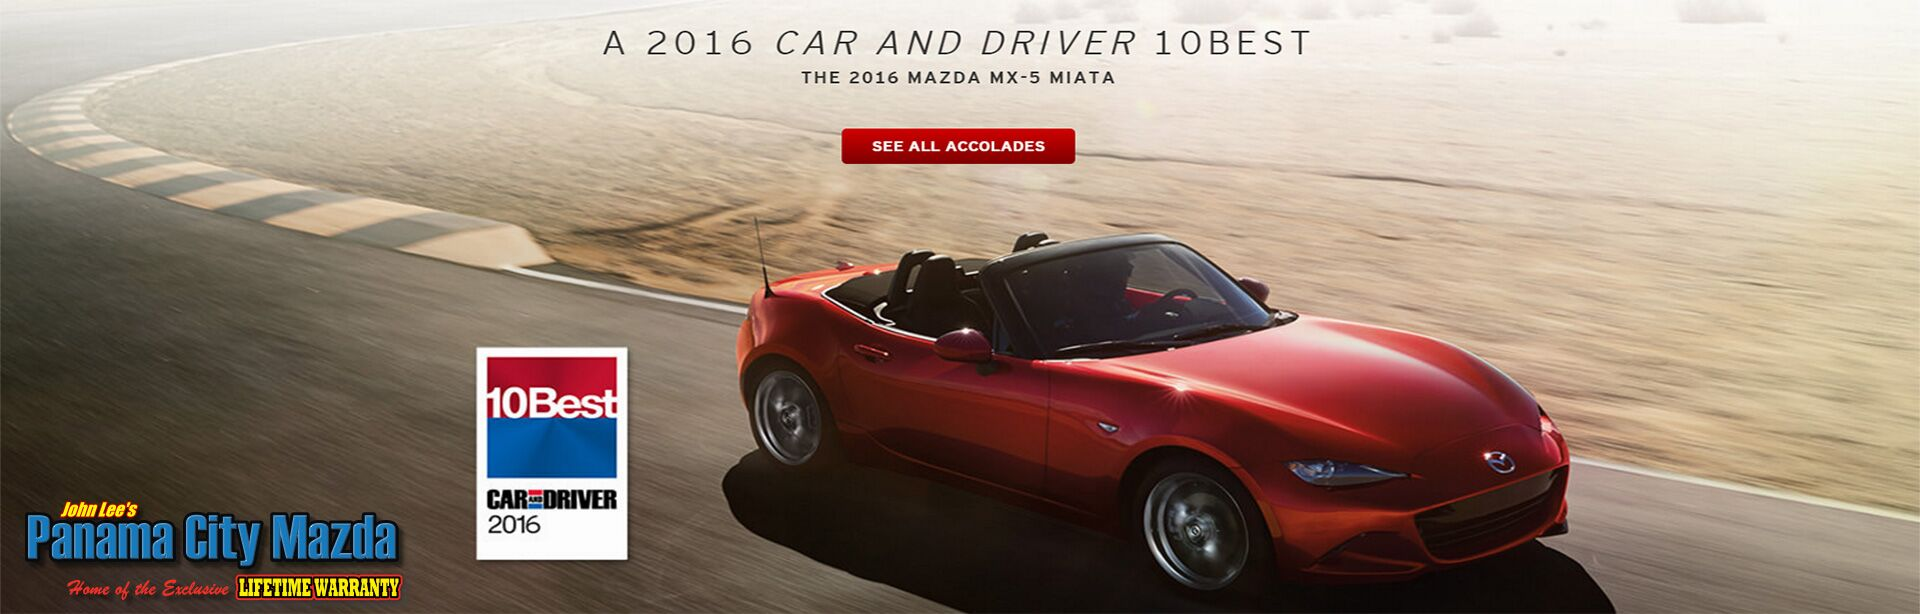 2016 MX-5 Miata - Car and Driver Ten Best Vehicles!